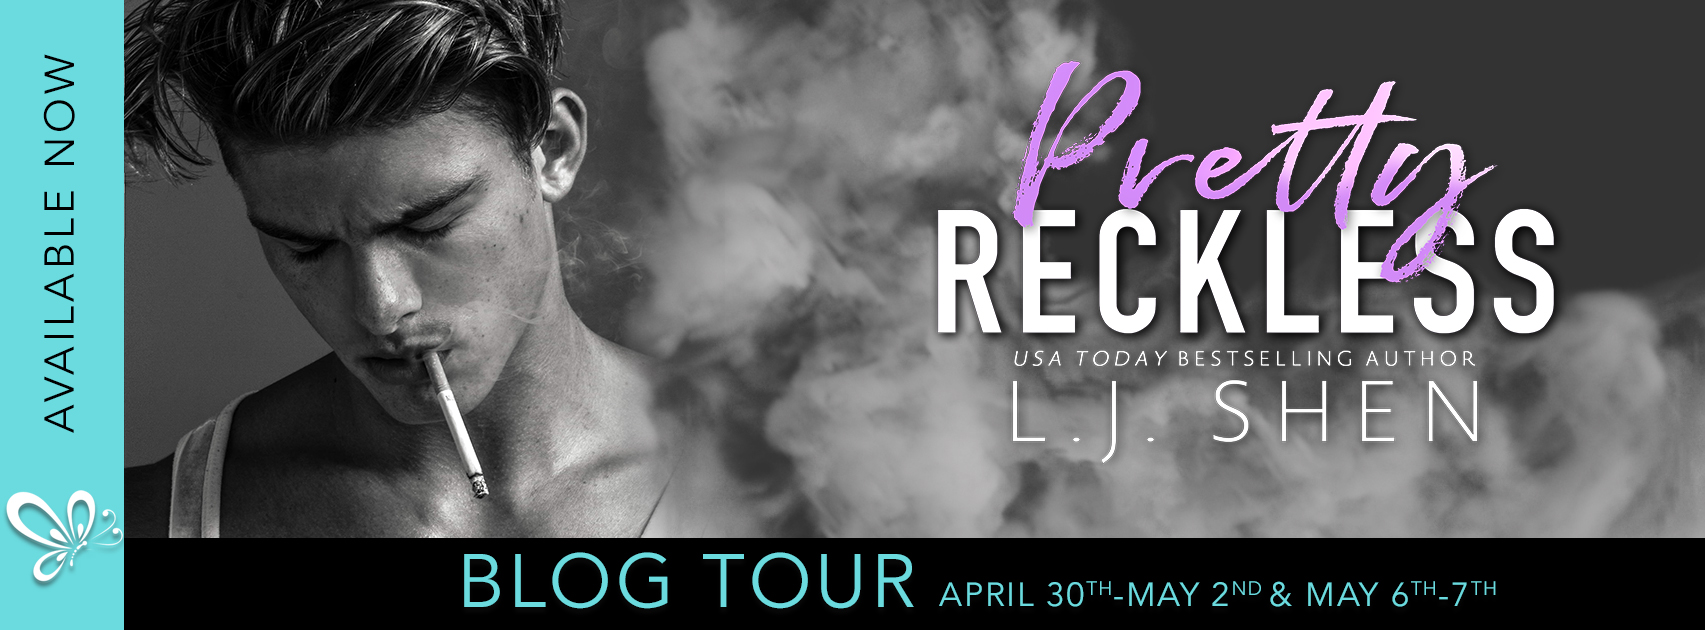 Blog Tour & Review: Pretty Reckless by L.J. Shen